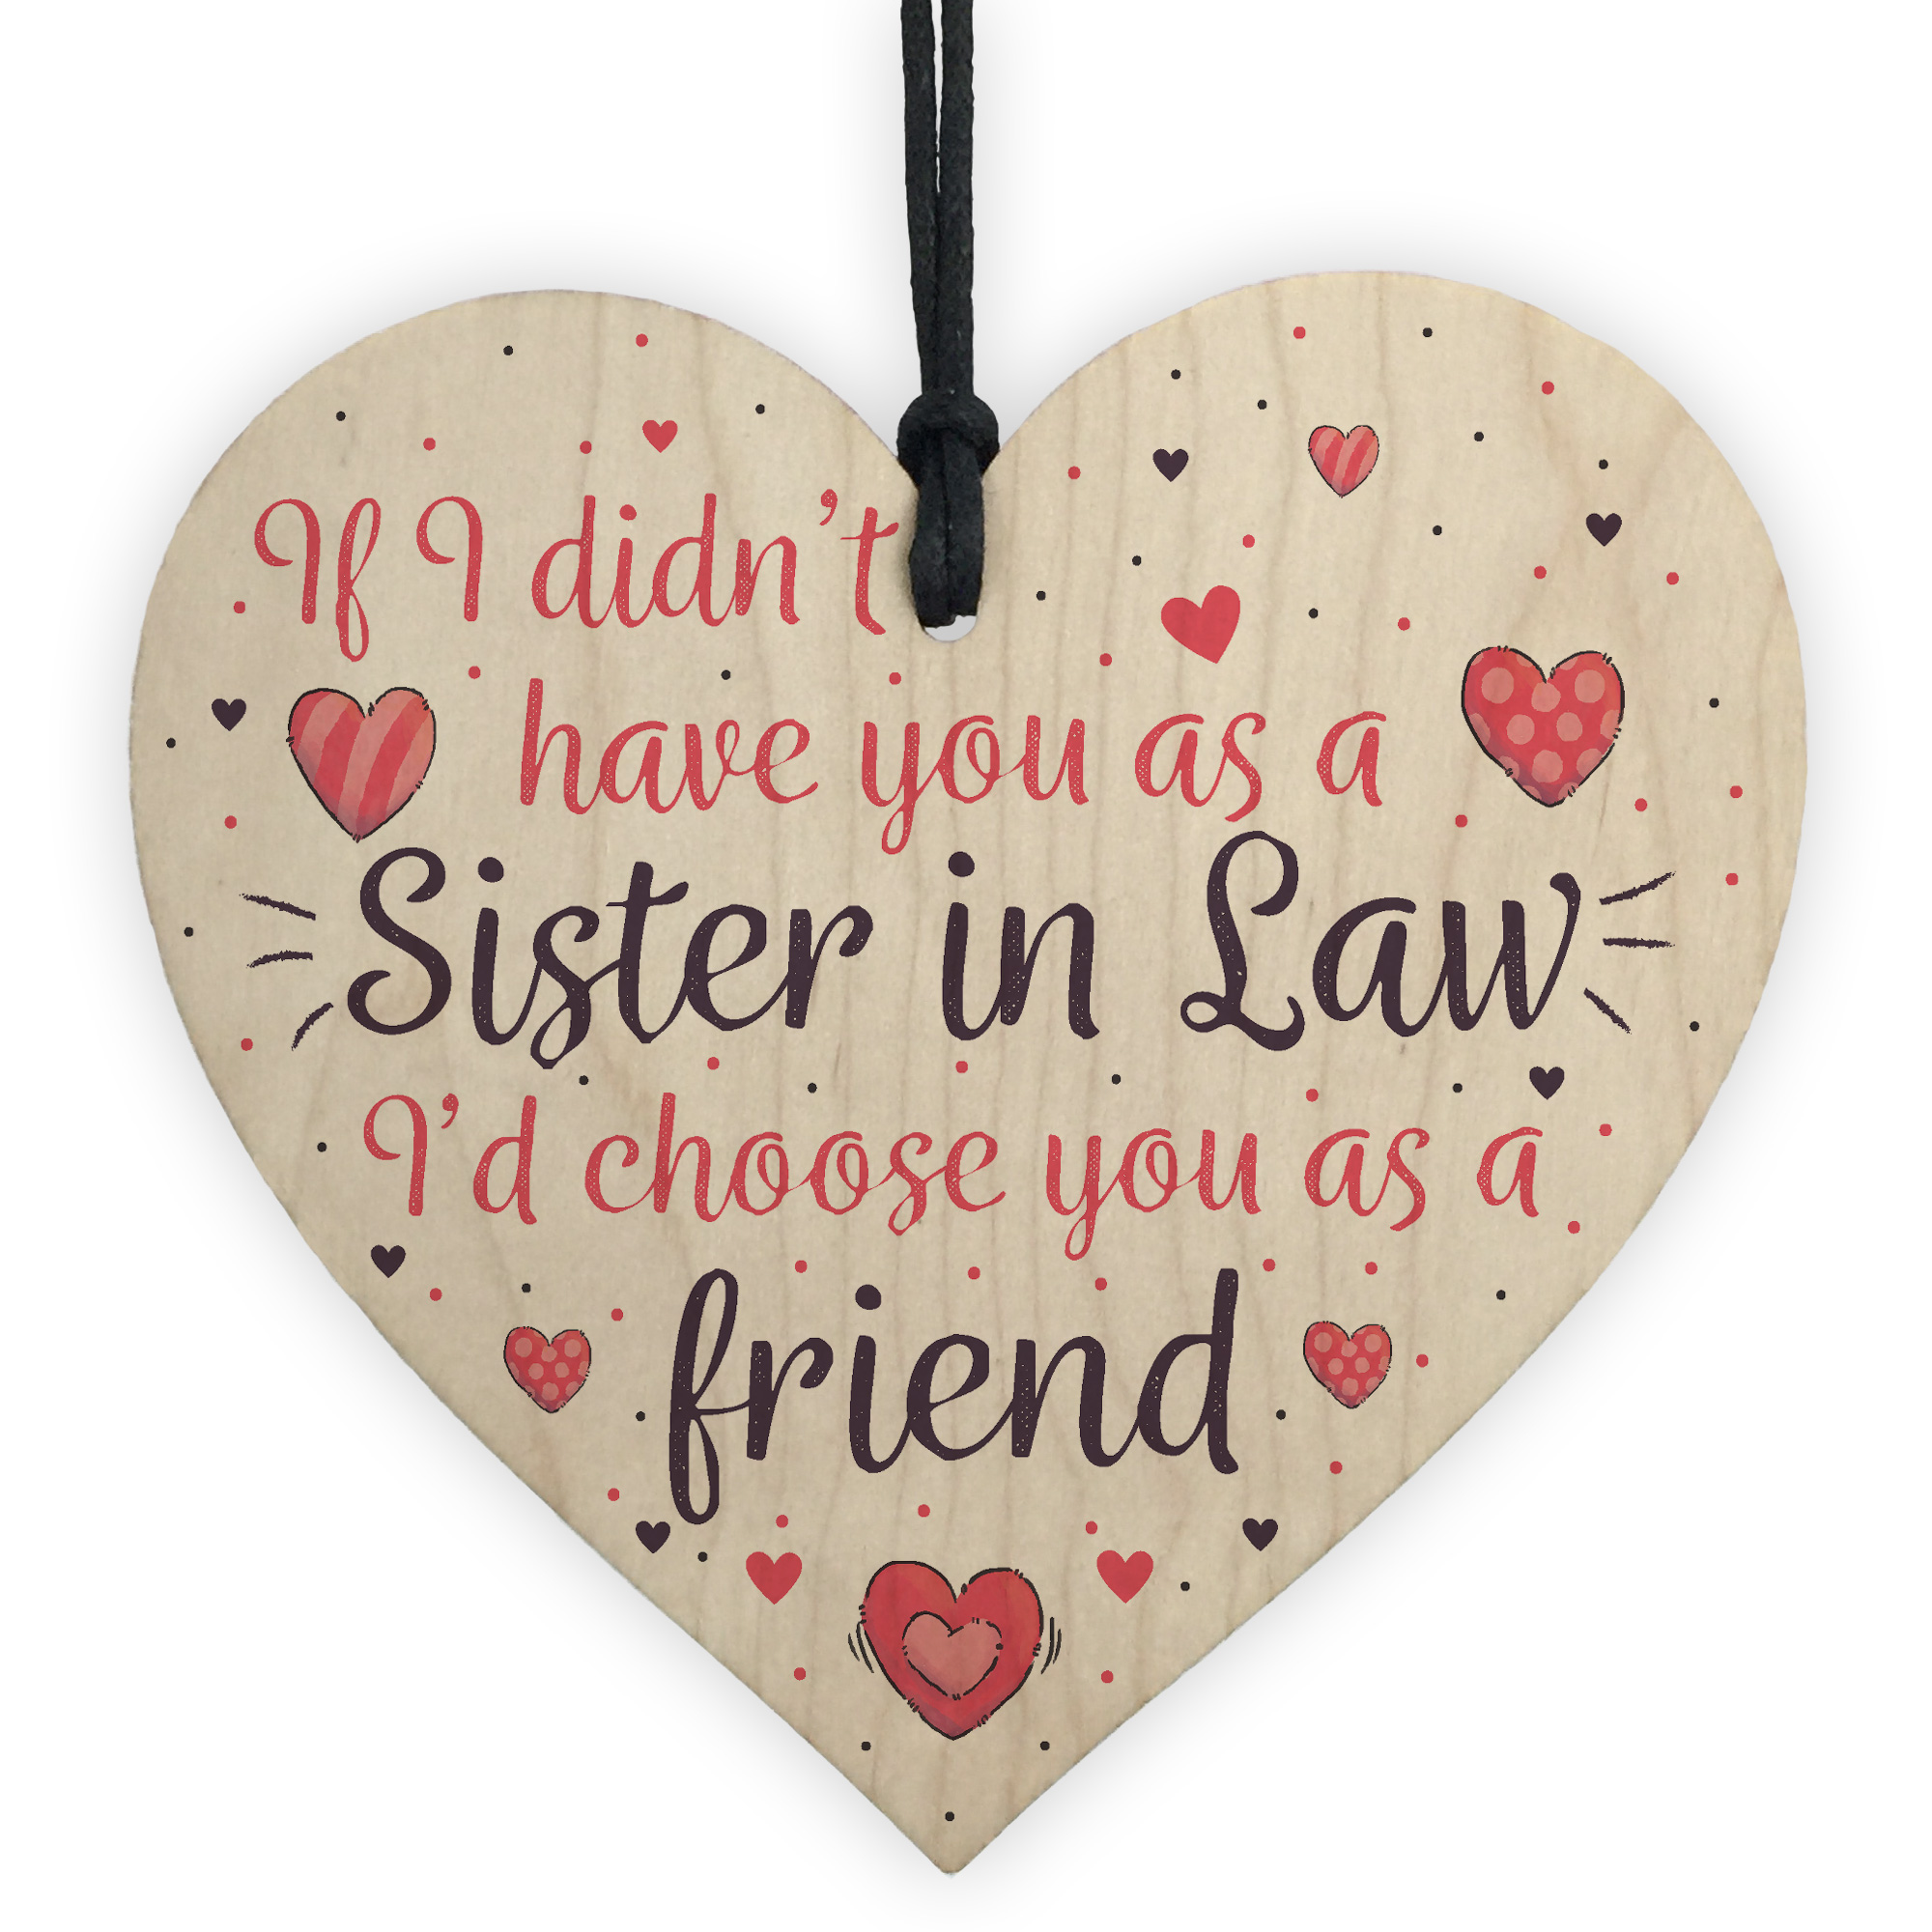 Details About Sister In Law Friendship Gift Handmade Wood Heart Sign Birthday For